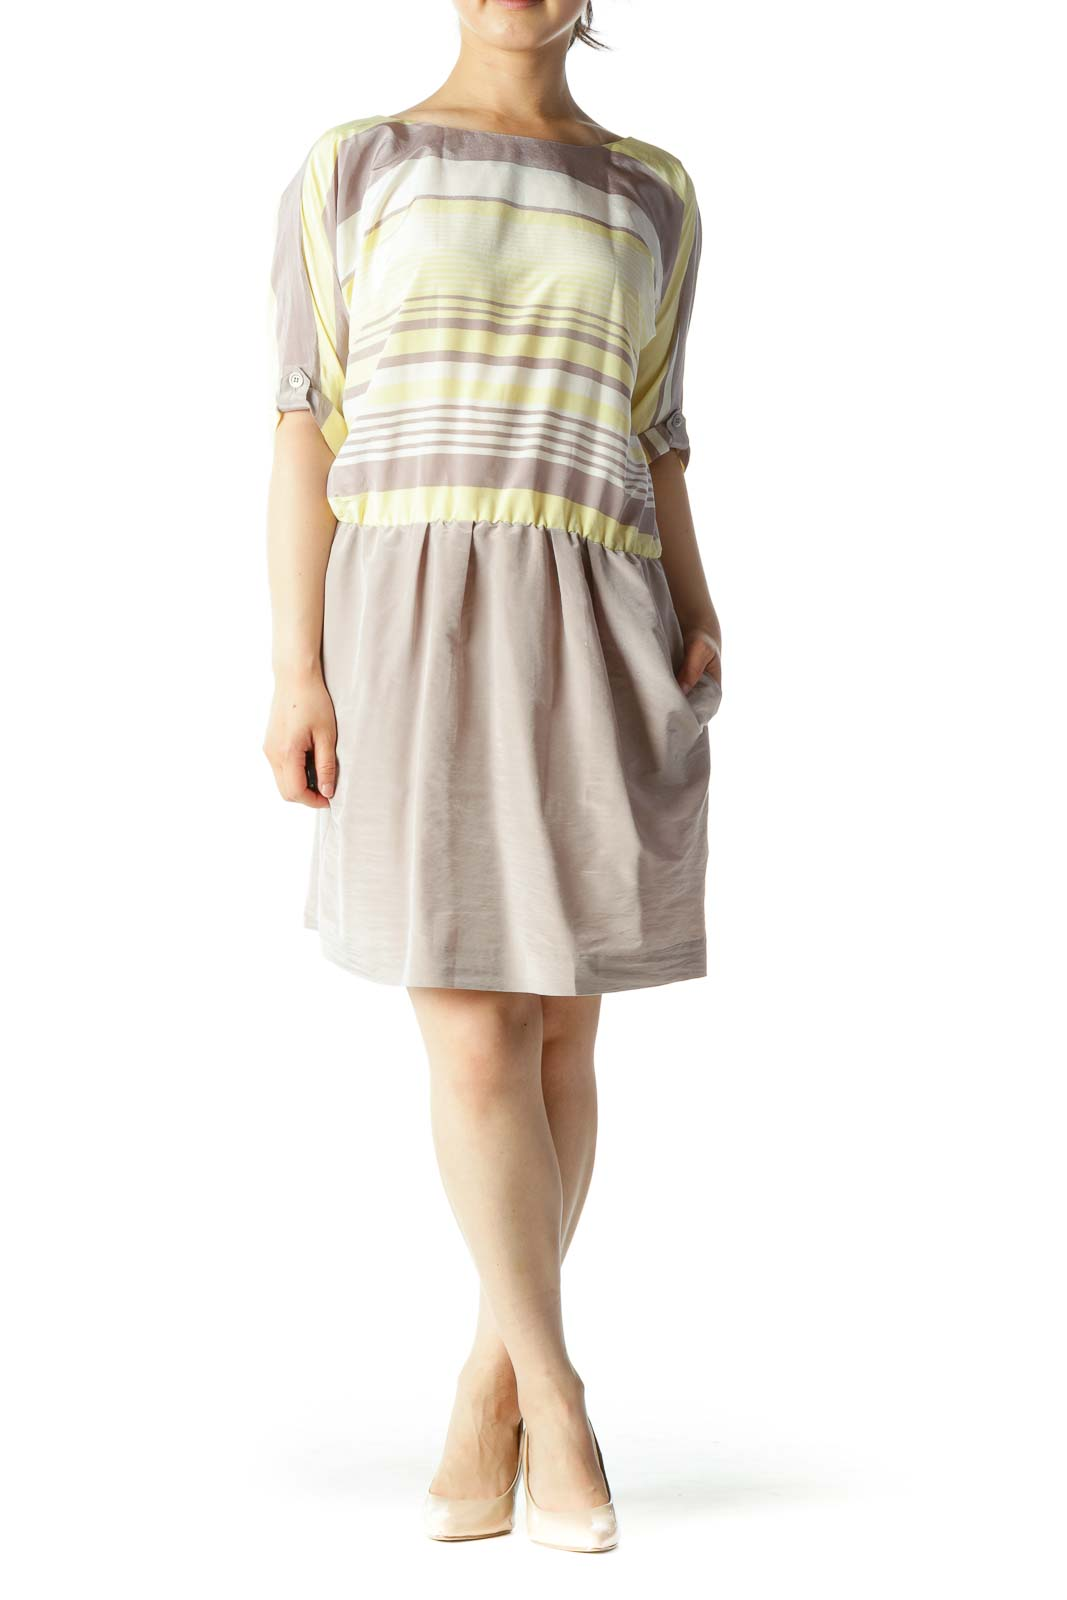 Beige Yellow White Gradient Stripes Bat Sleeves Elastic Waist Dress